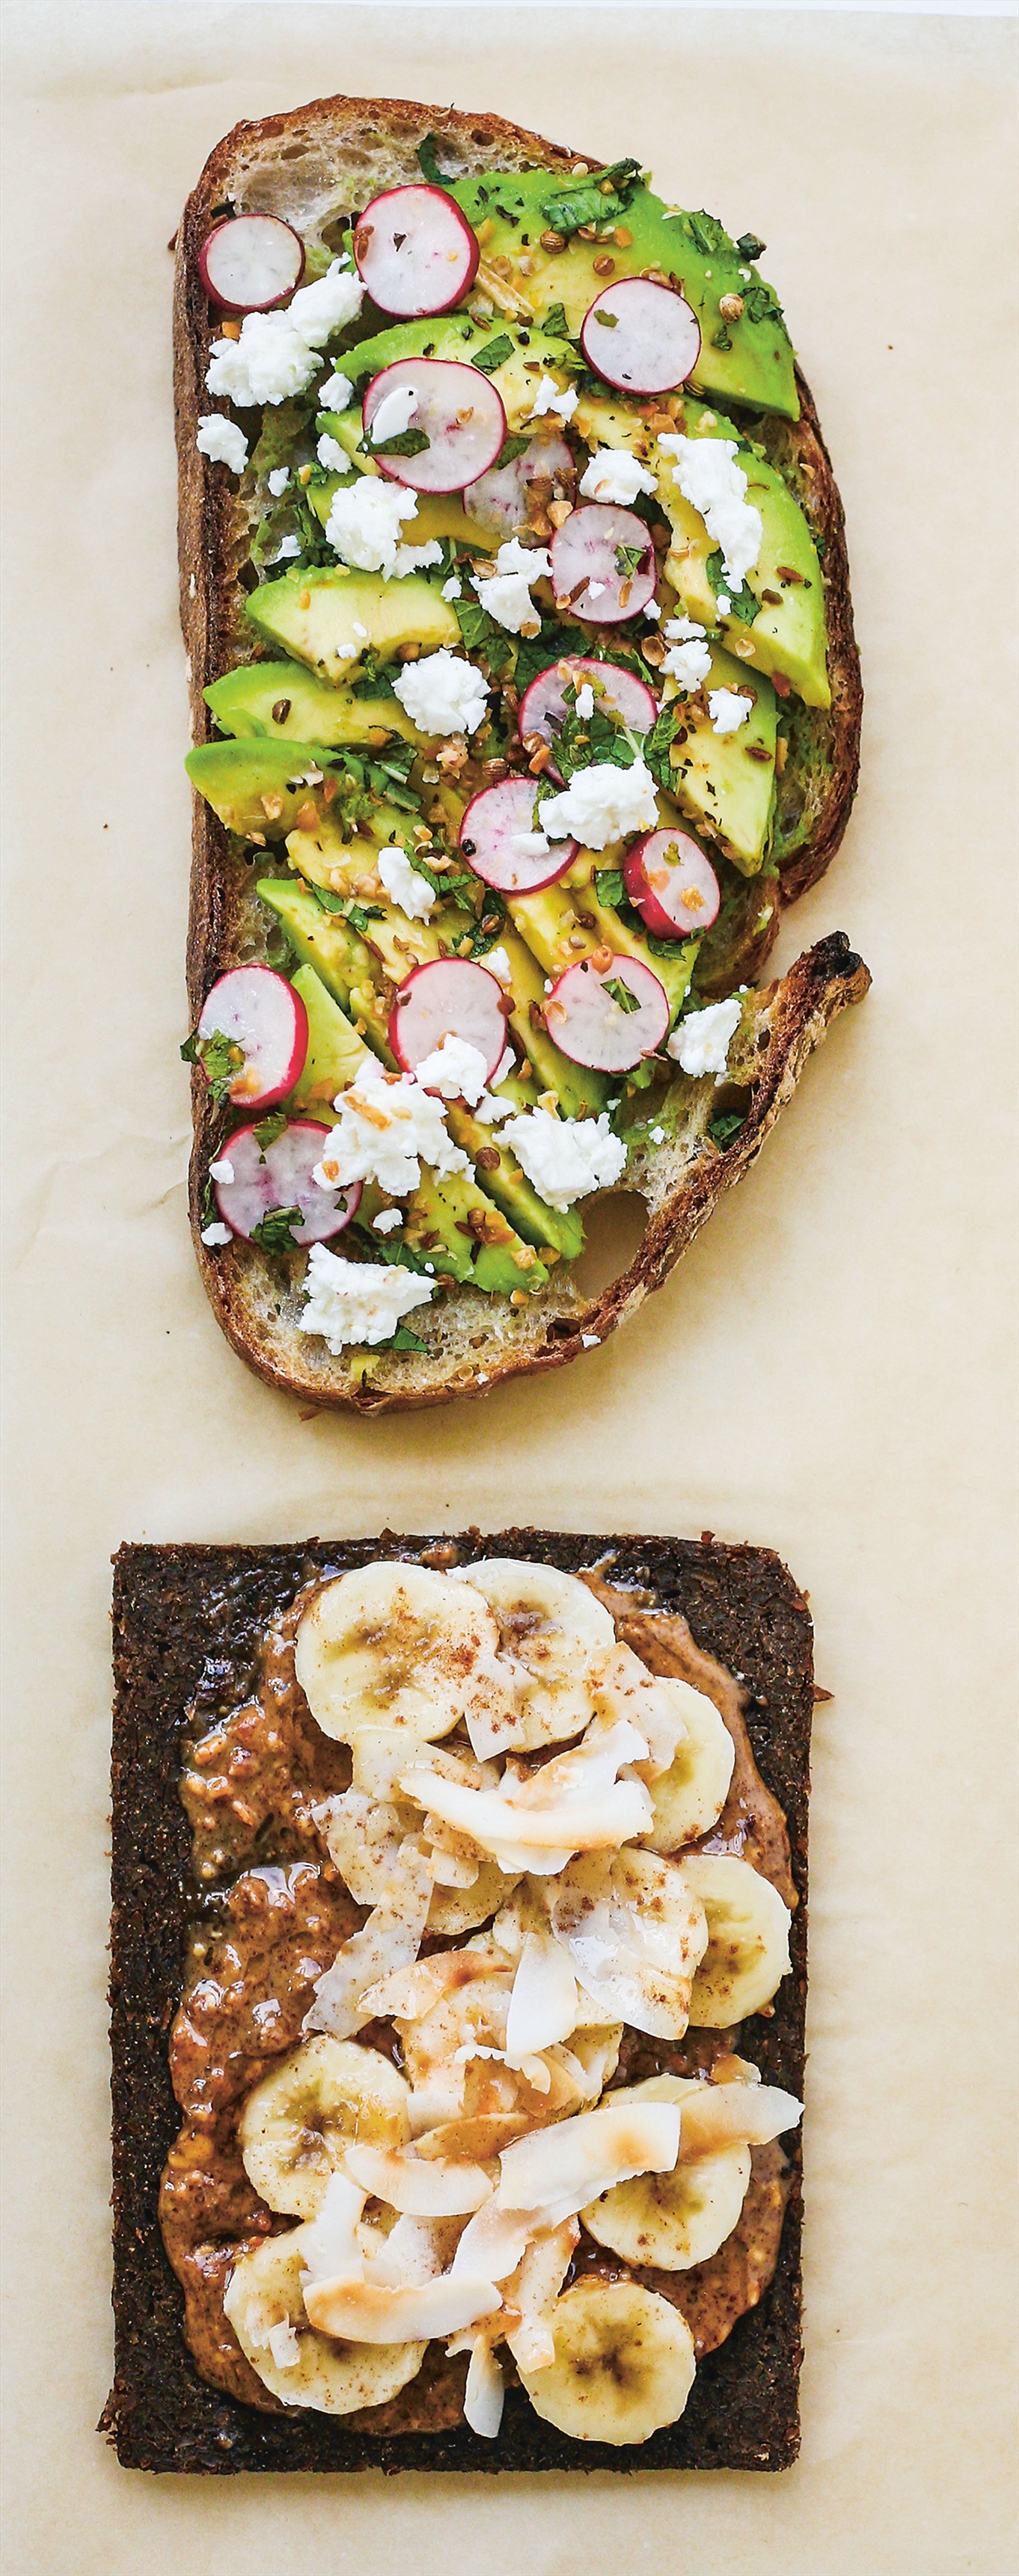 The open sandwich